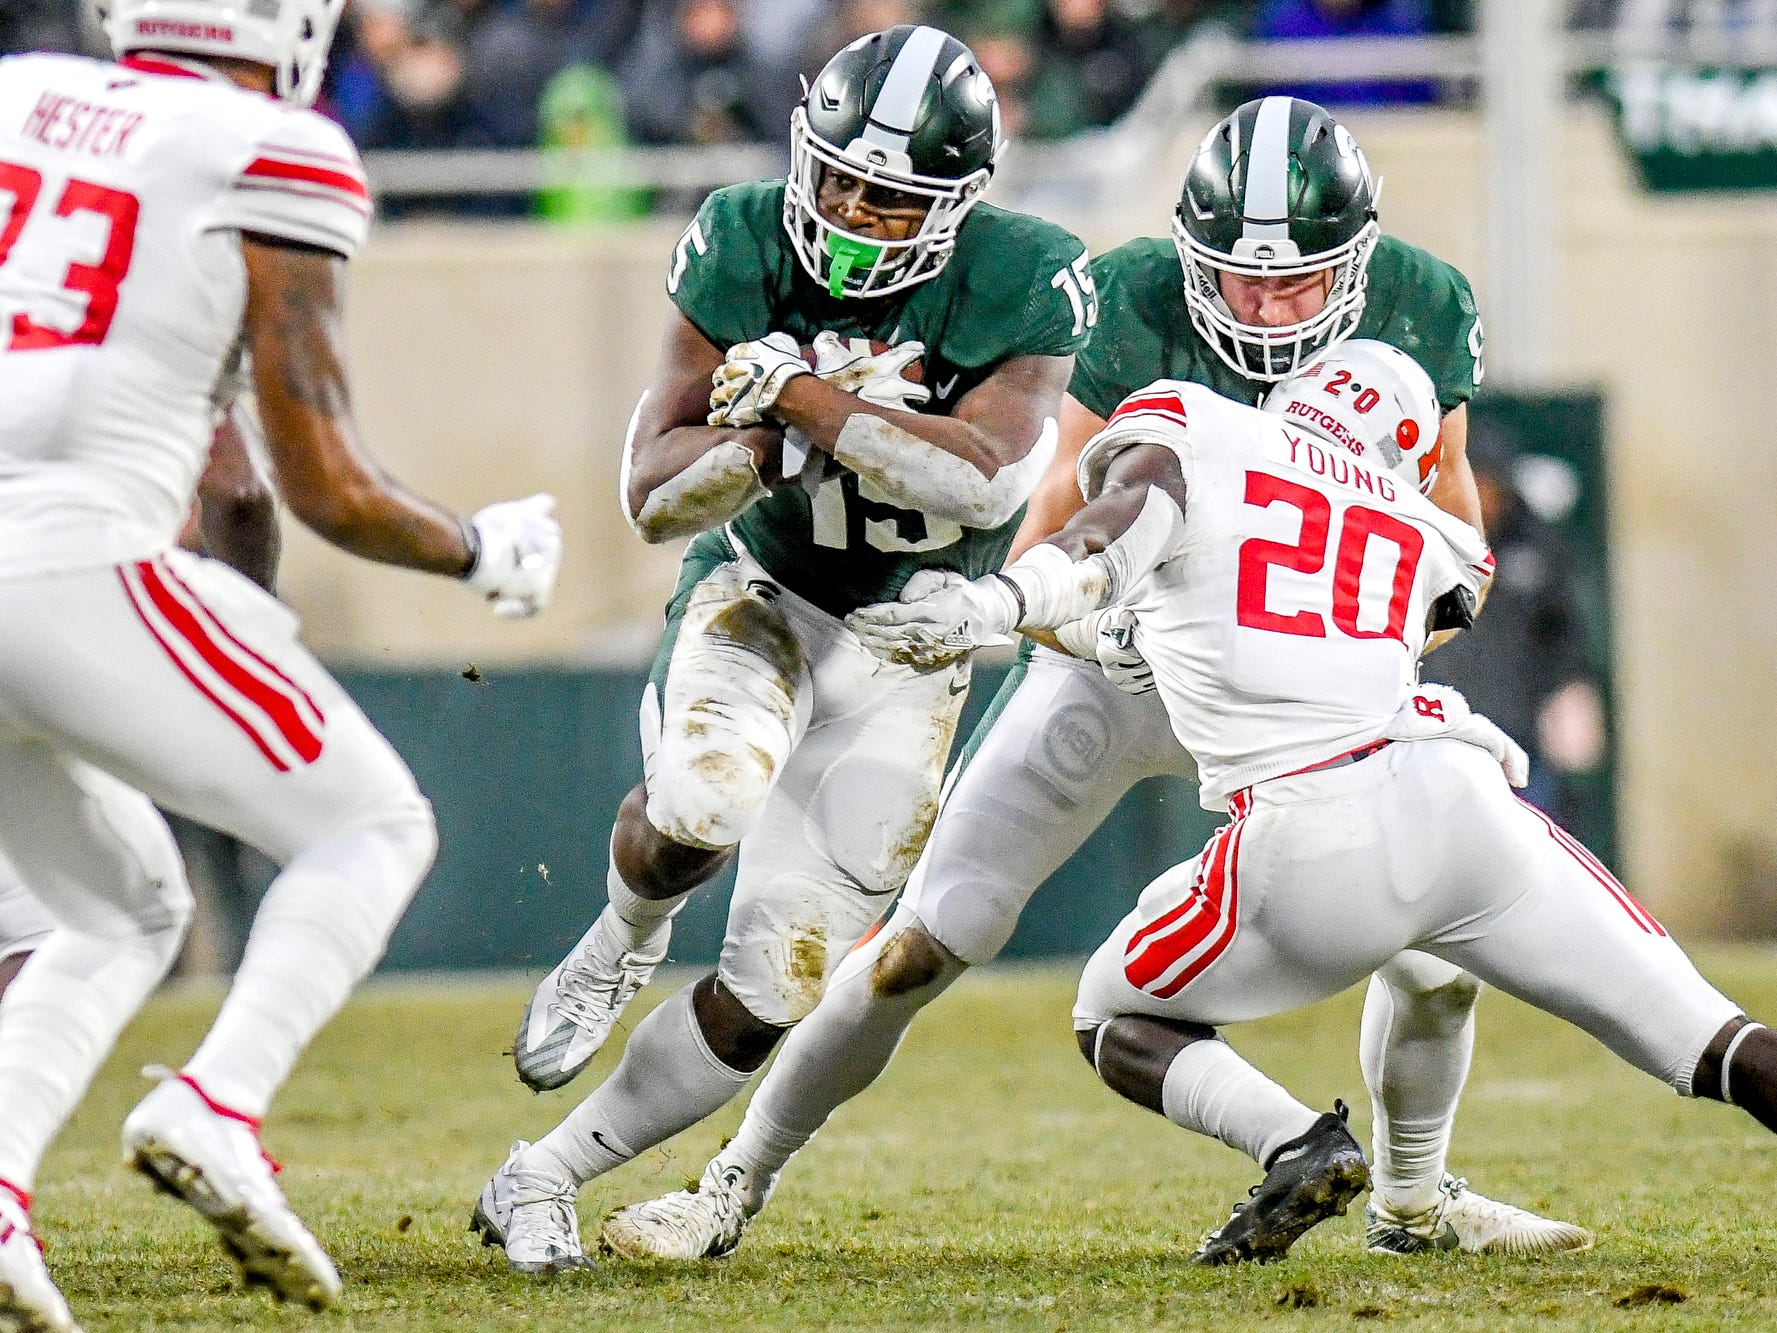 Michigan State's LaÕDarius Jefferson runs for a gain during the first quarter on Saturday, Nov. 24, 2018, at Spartan Stadium in East Lansing.